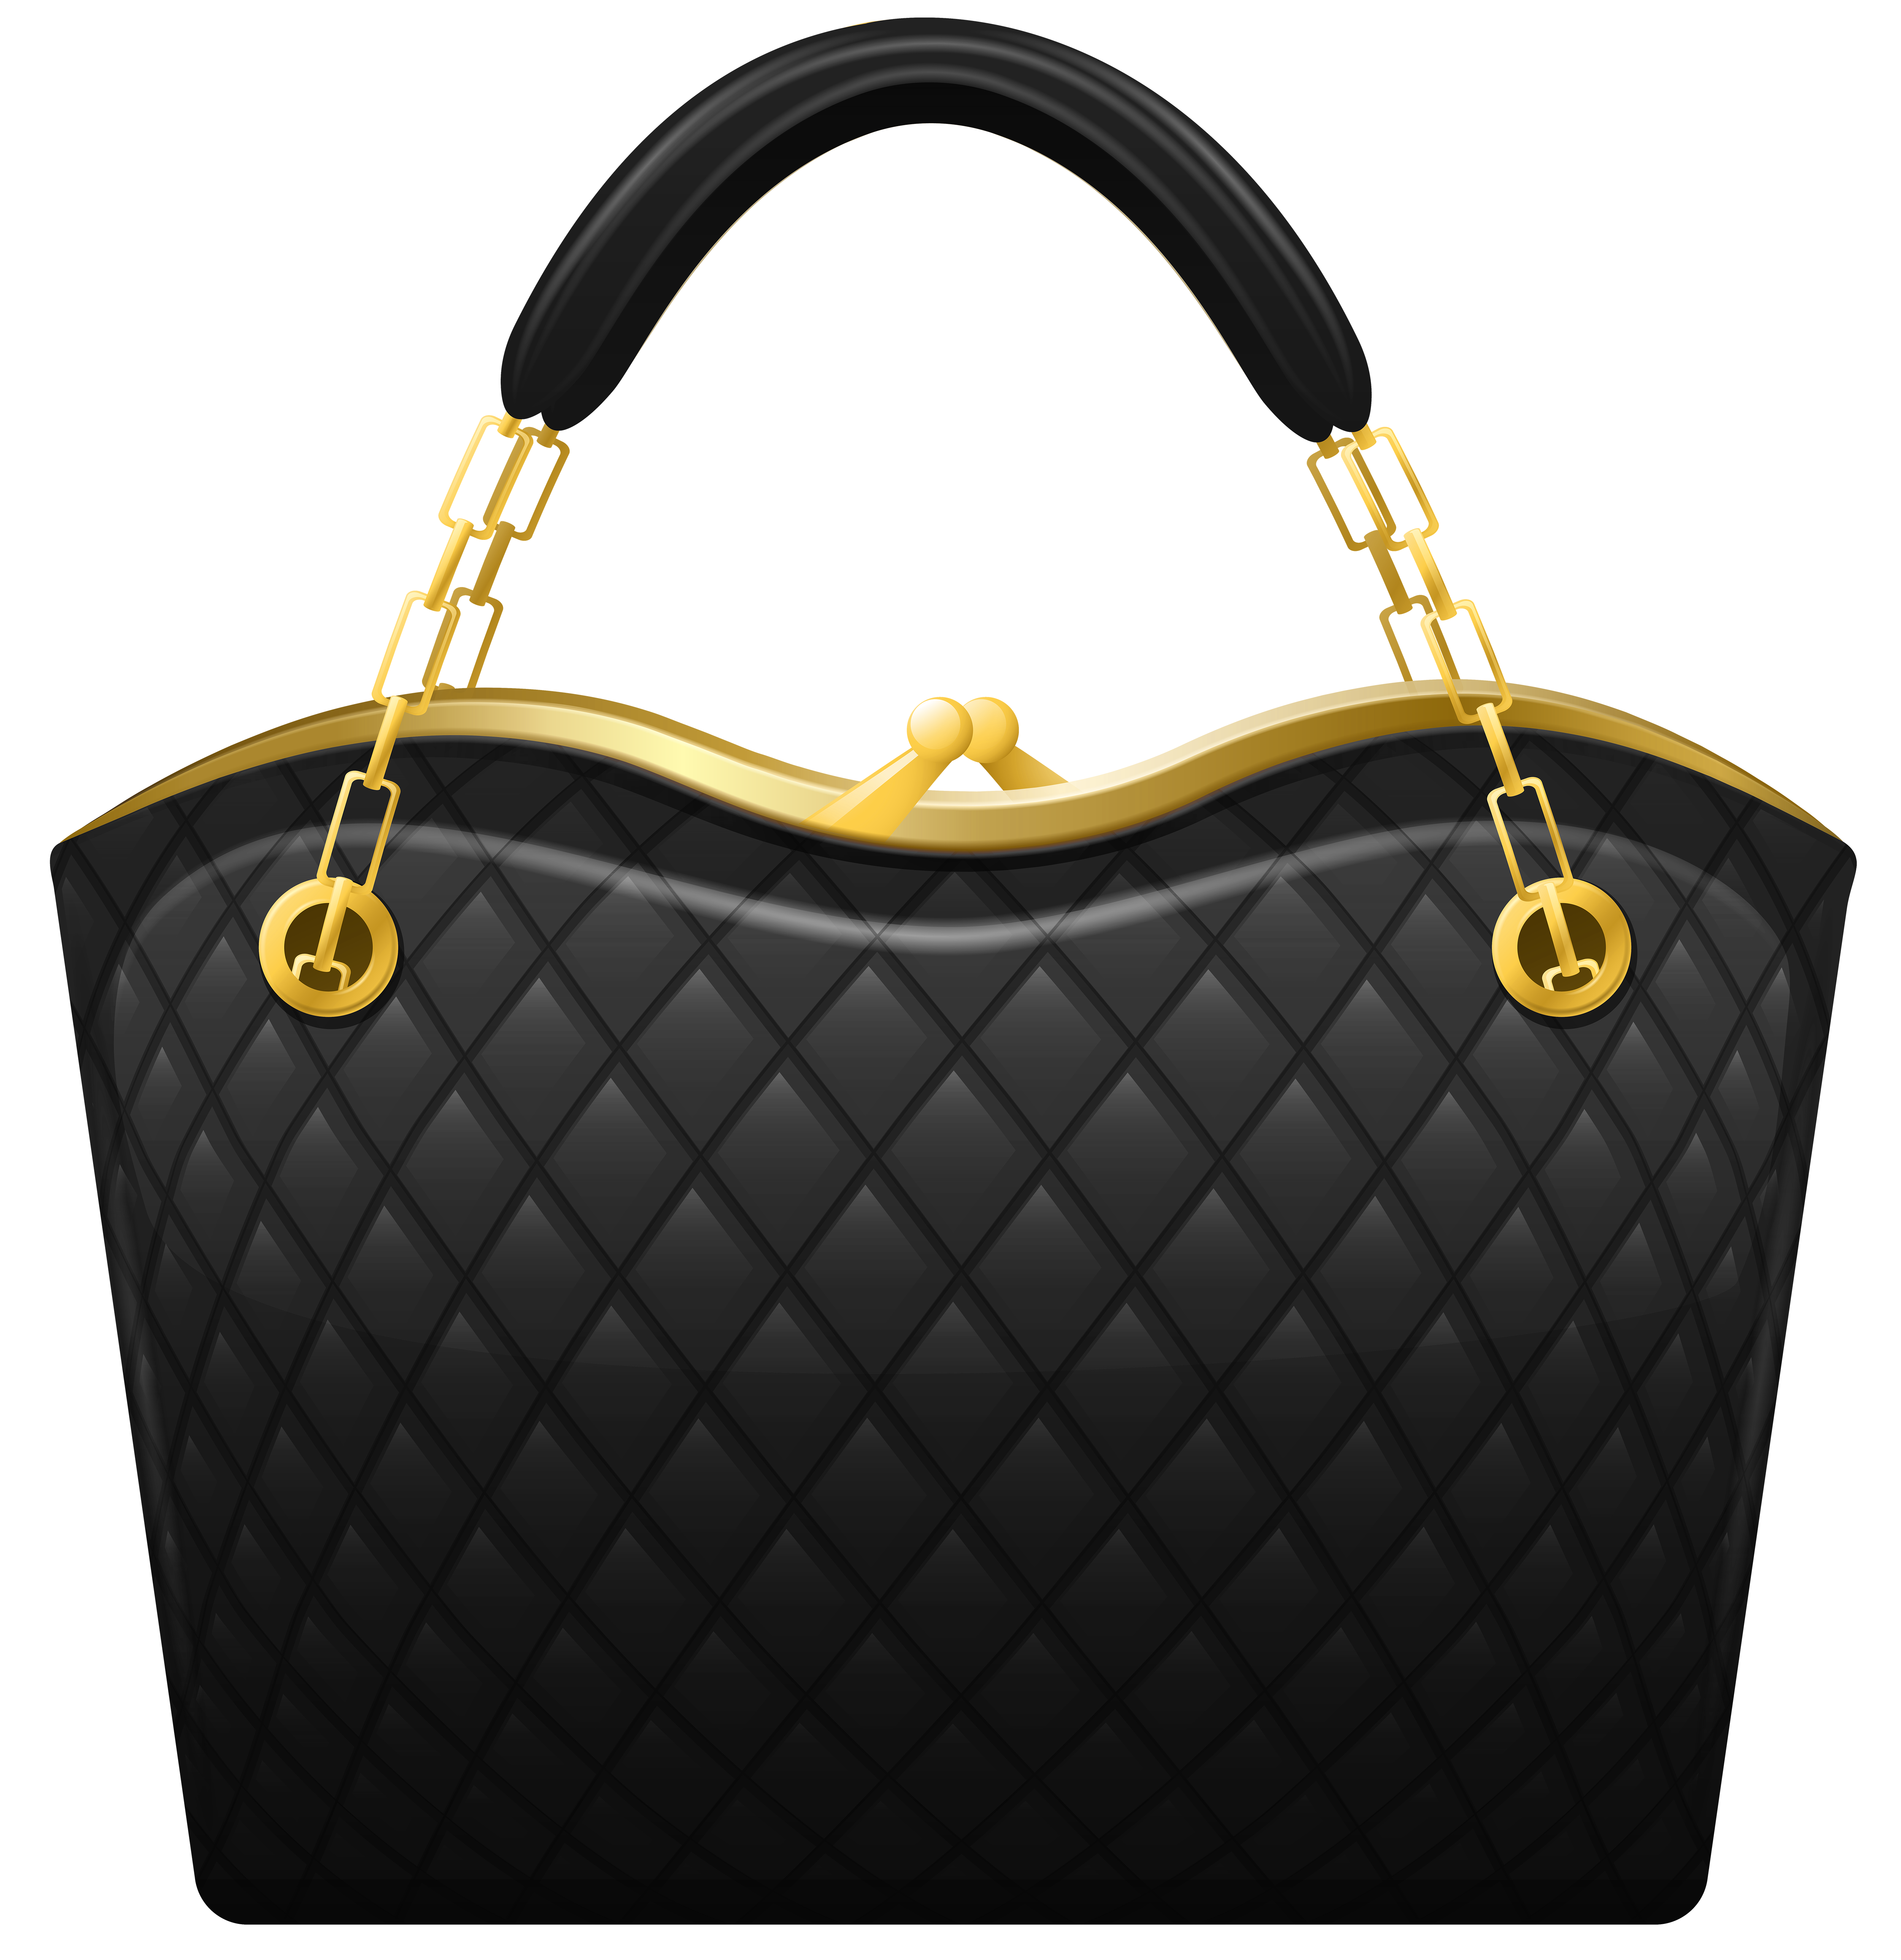 Black purse png. Handbag clip art best